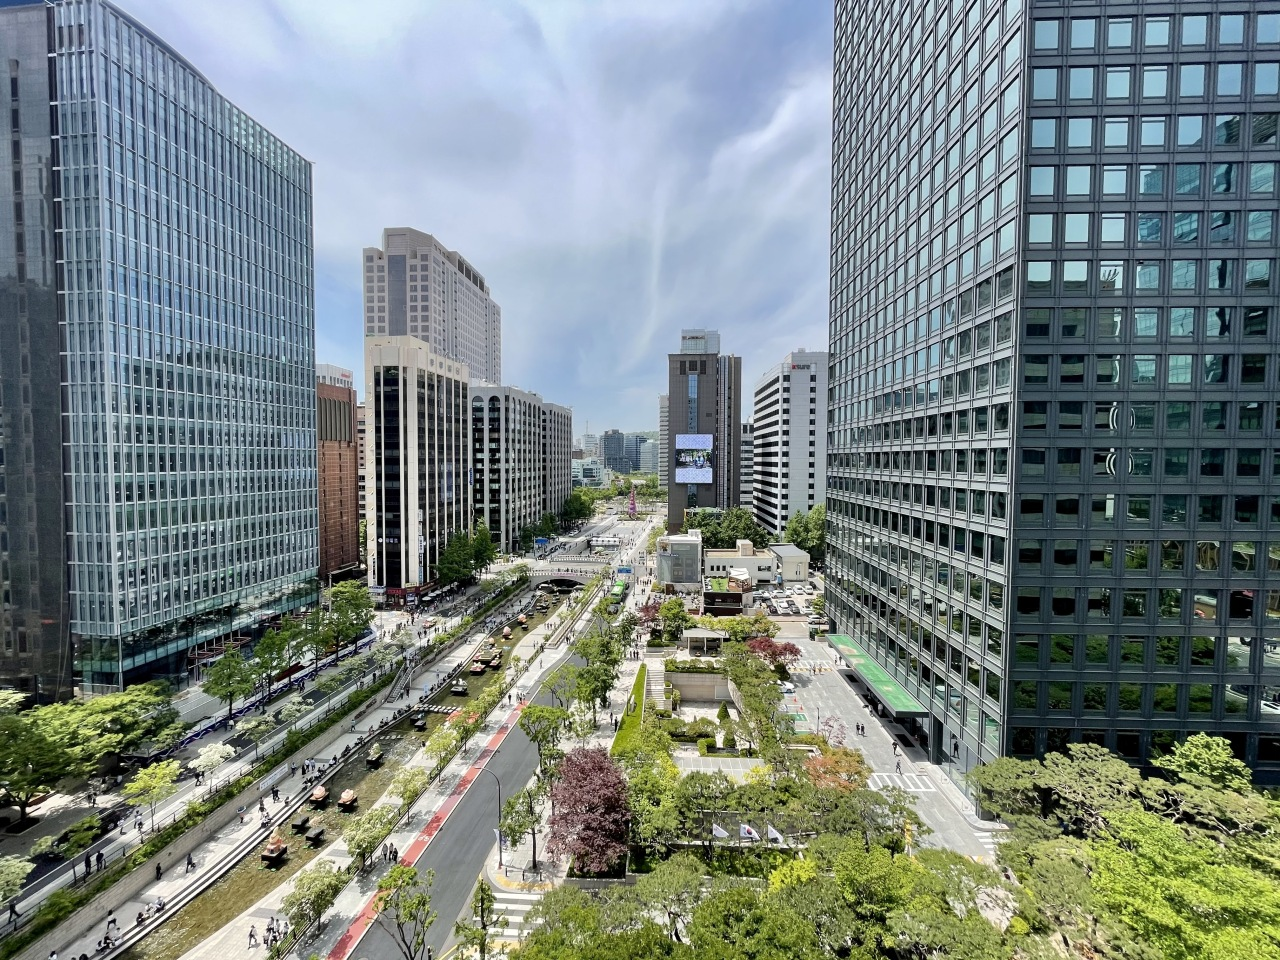 Cheonggyecheon and its neighboring buildings in Jongno-gu, central Seoul. Cheonggyecheon is one of few green spaces amid the concrete jungle of central Seoul. (Im Eun-byel / The Korea Herald)